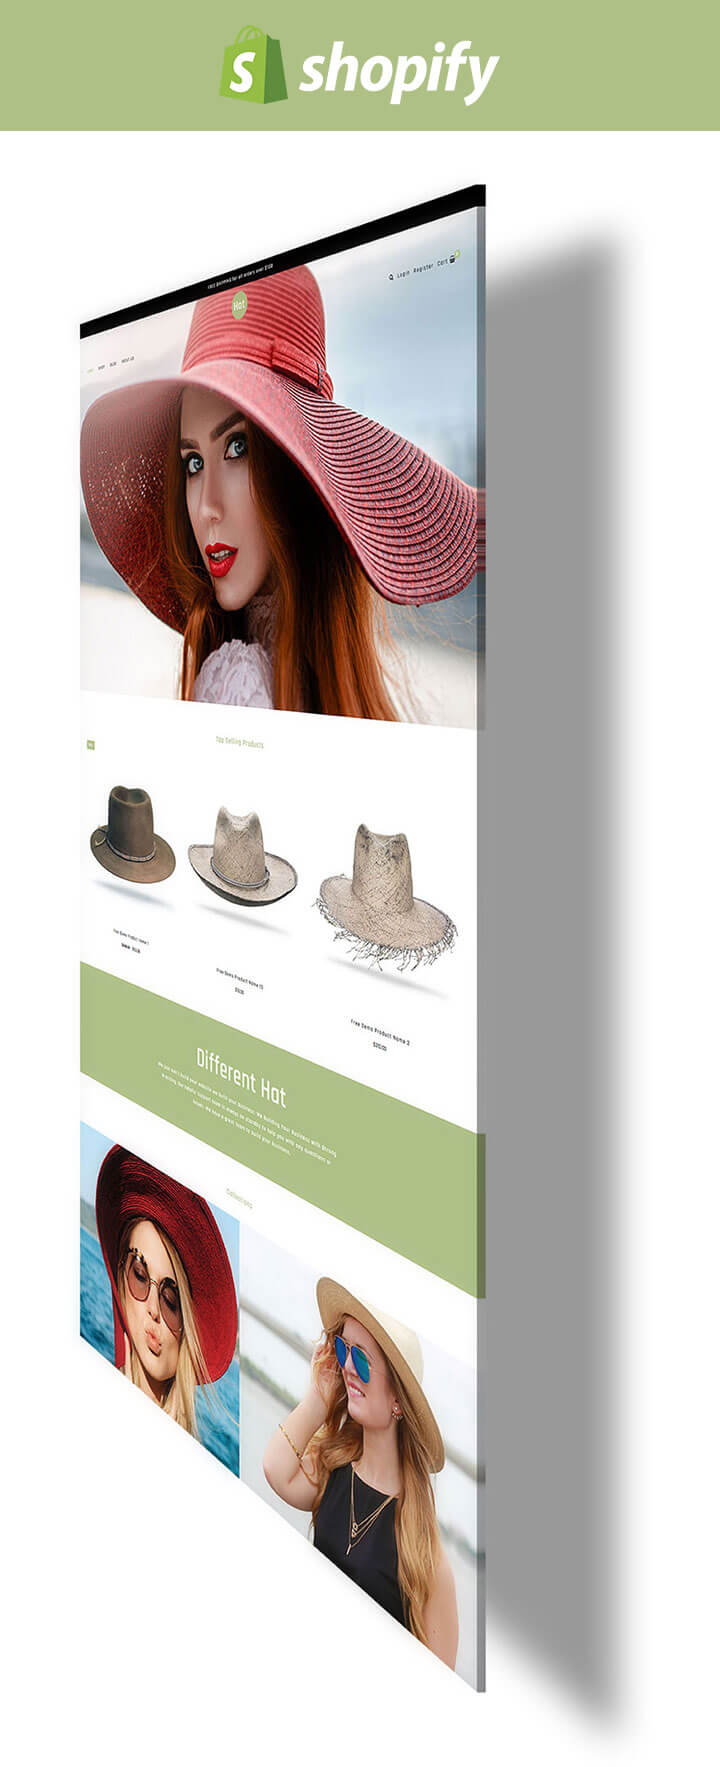 hat-fashion-hats-styles-for-men-women-responsive-shopify-theme-long-description-image-themetidy